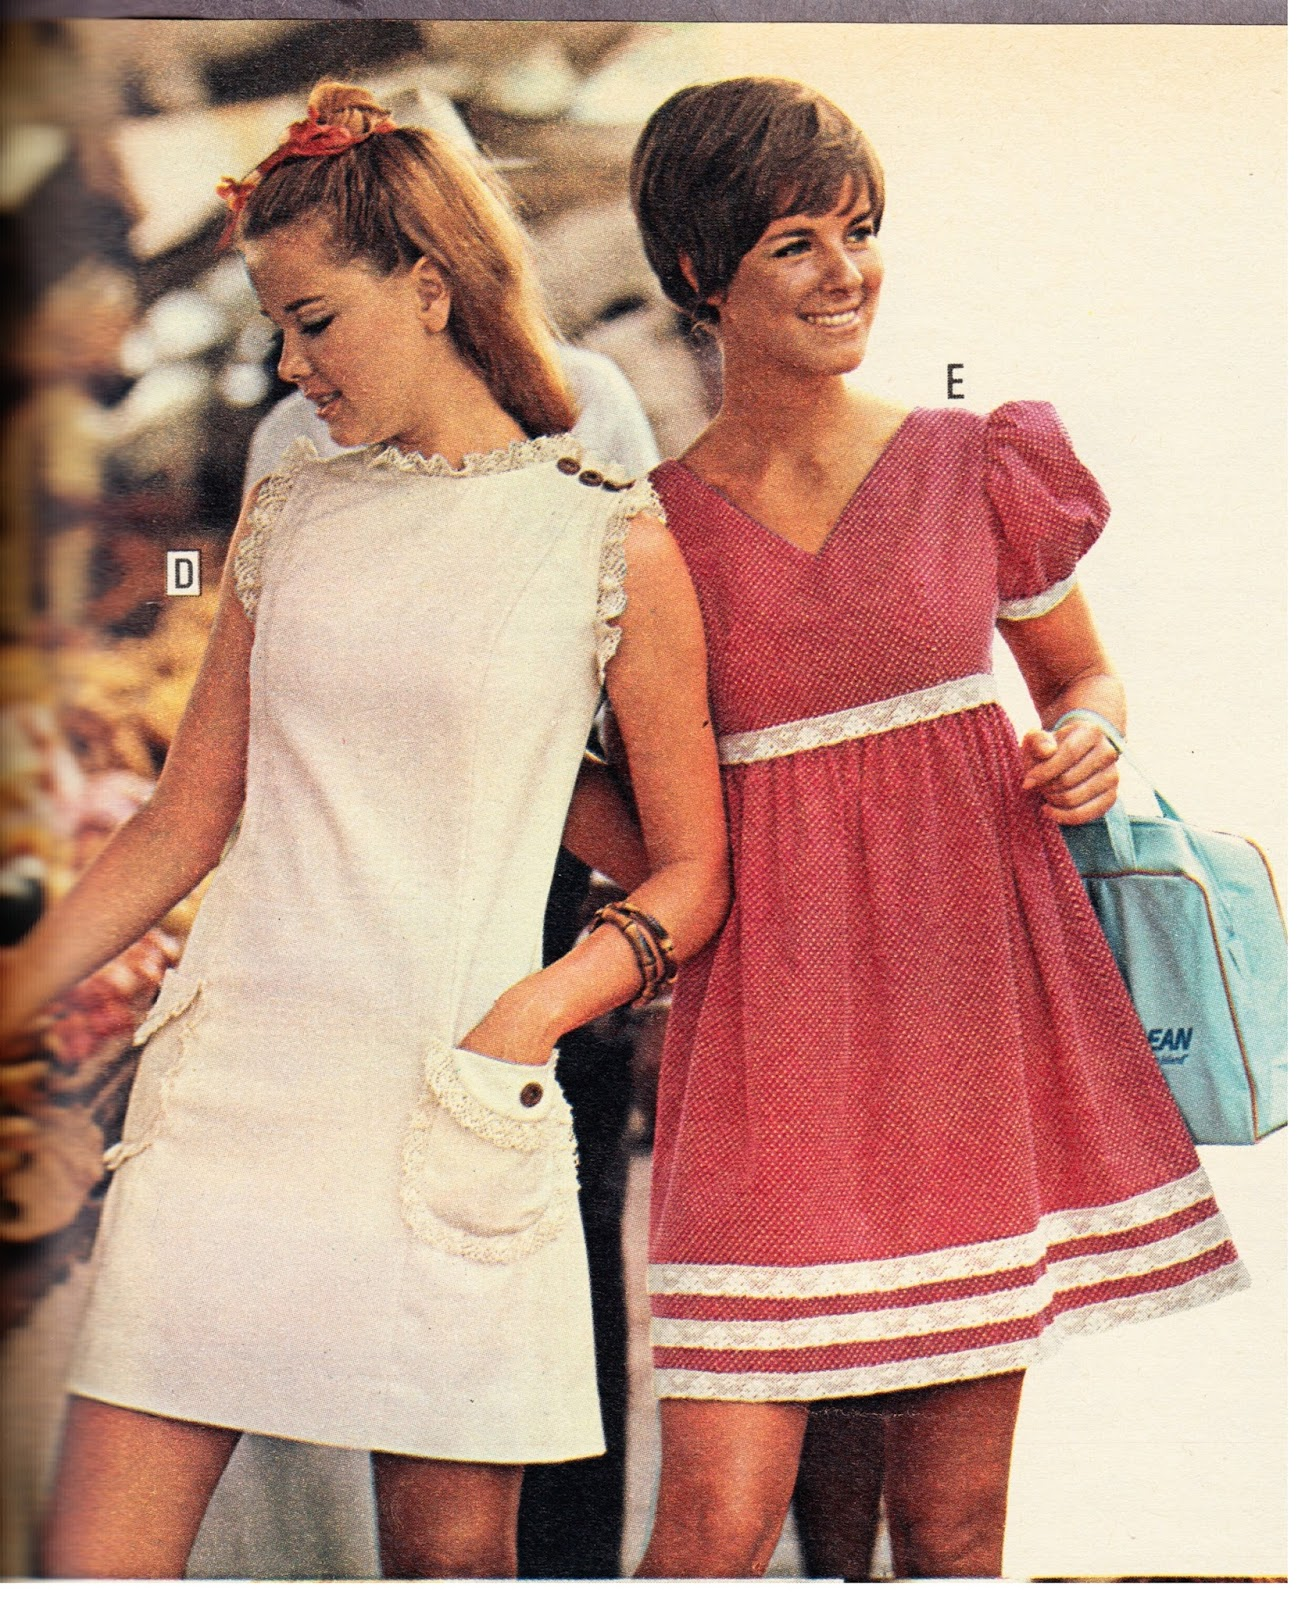 ca5c4ab0280 Penny s Summer Dresses! Part a. With Kathy and Wendy!! From an era long